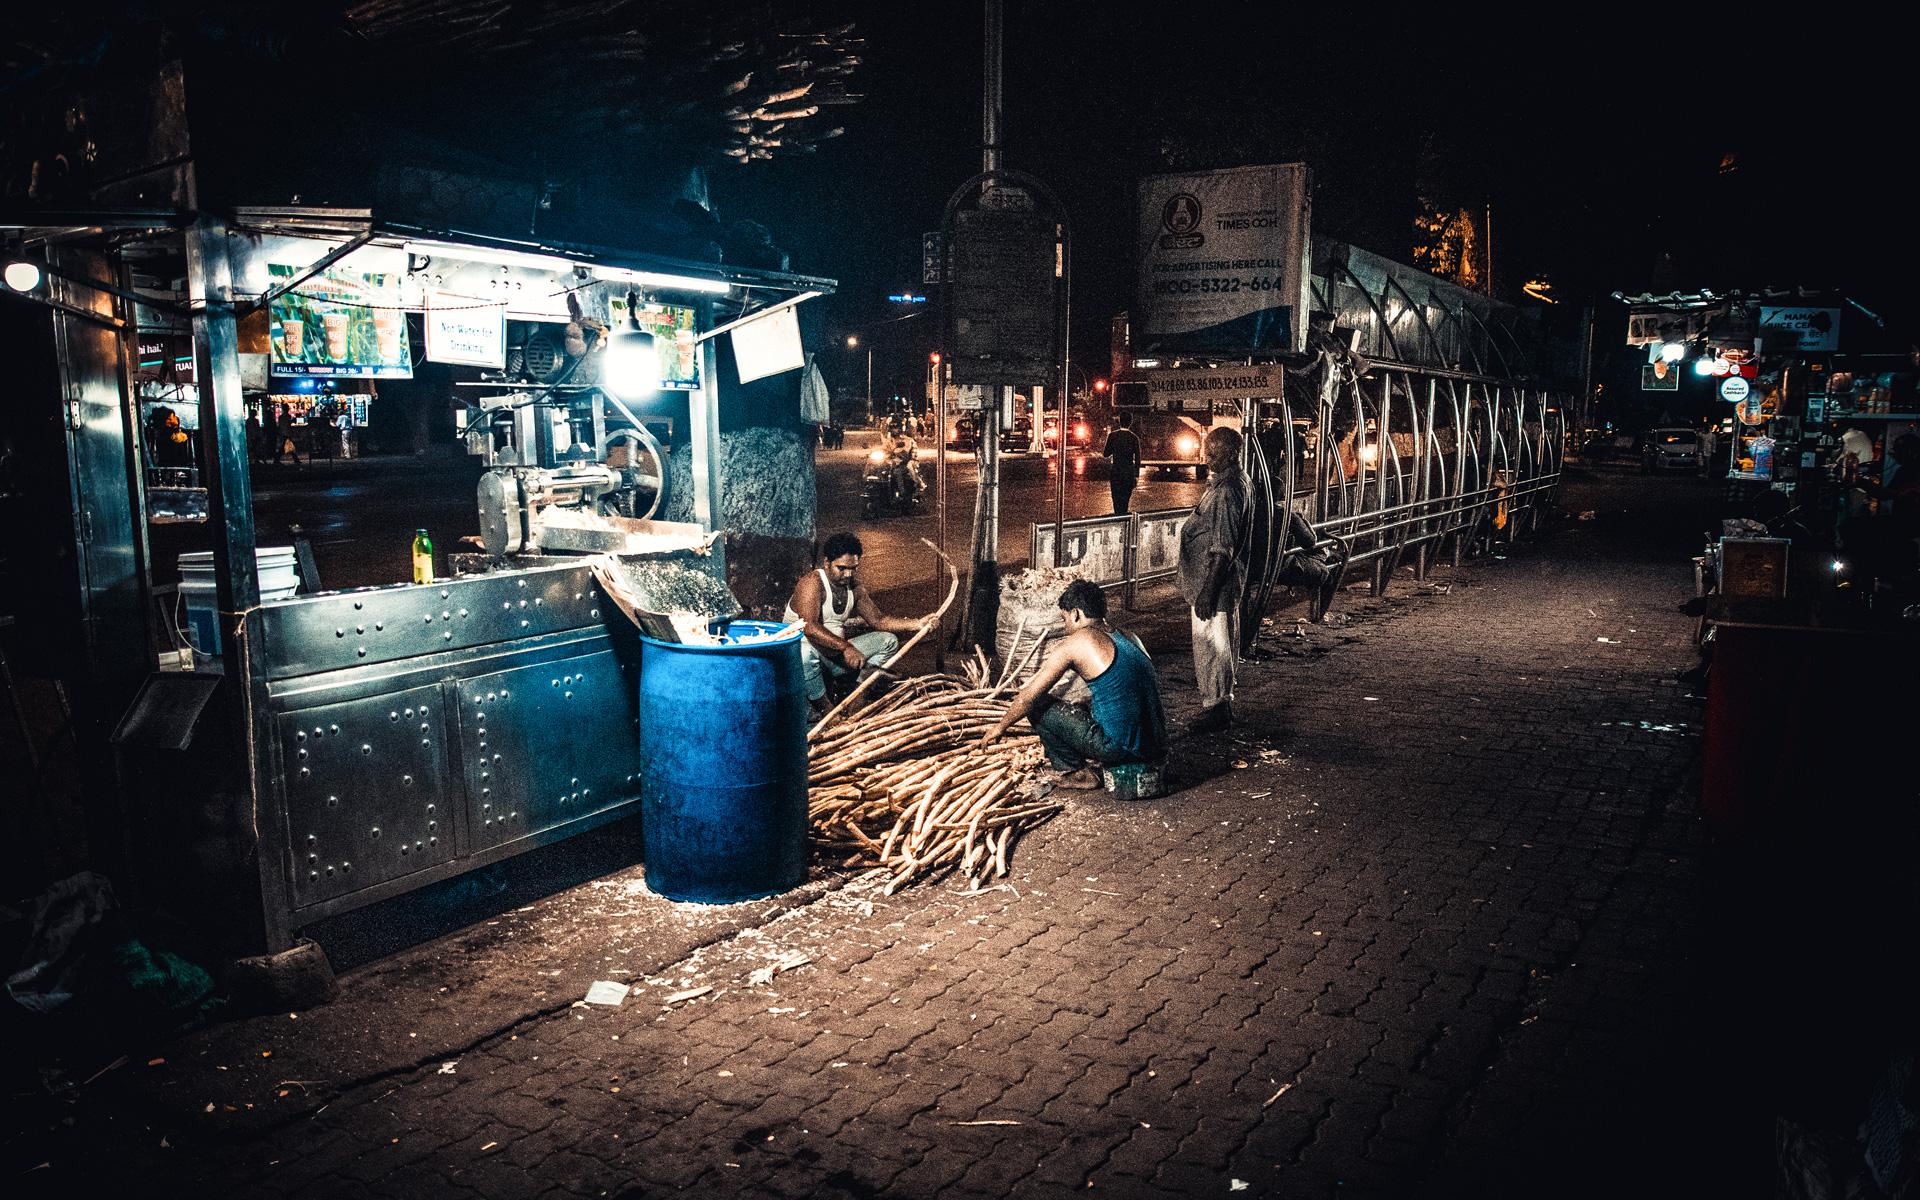 Sugar cane stalls are everywhere in Mumbai. People drink these cheap drinks to get some extra energy boost during the day.